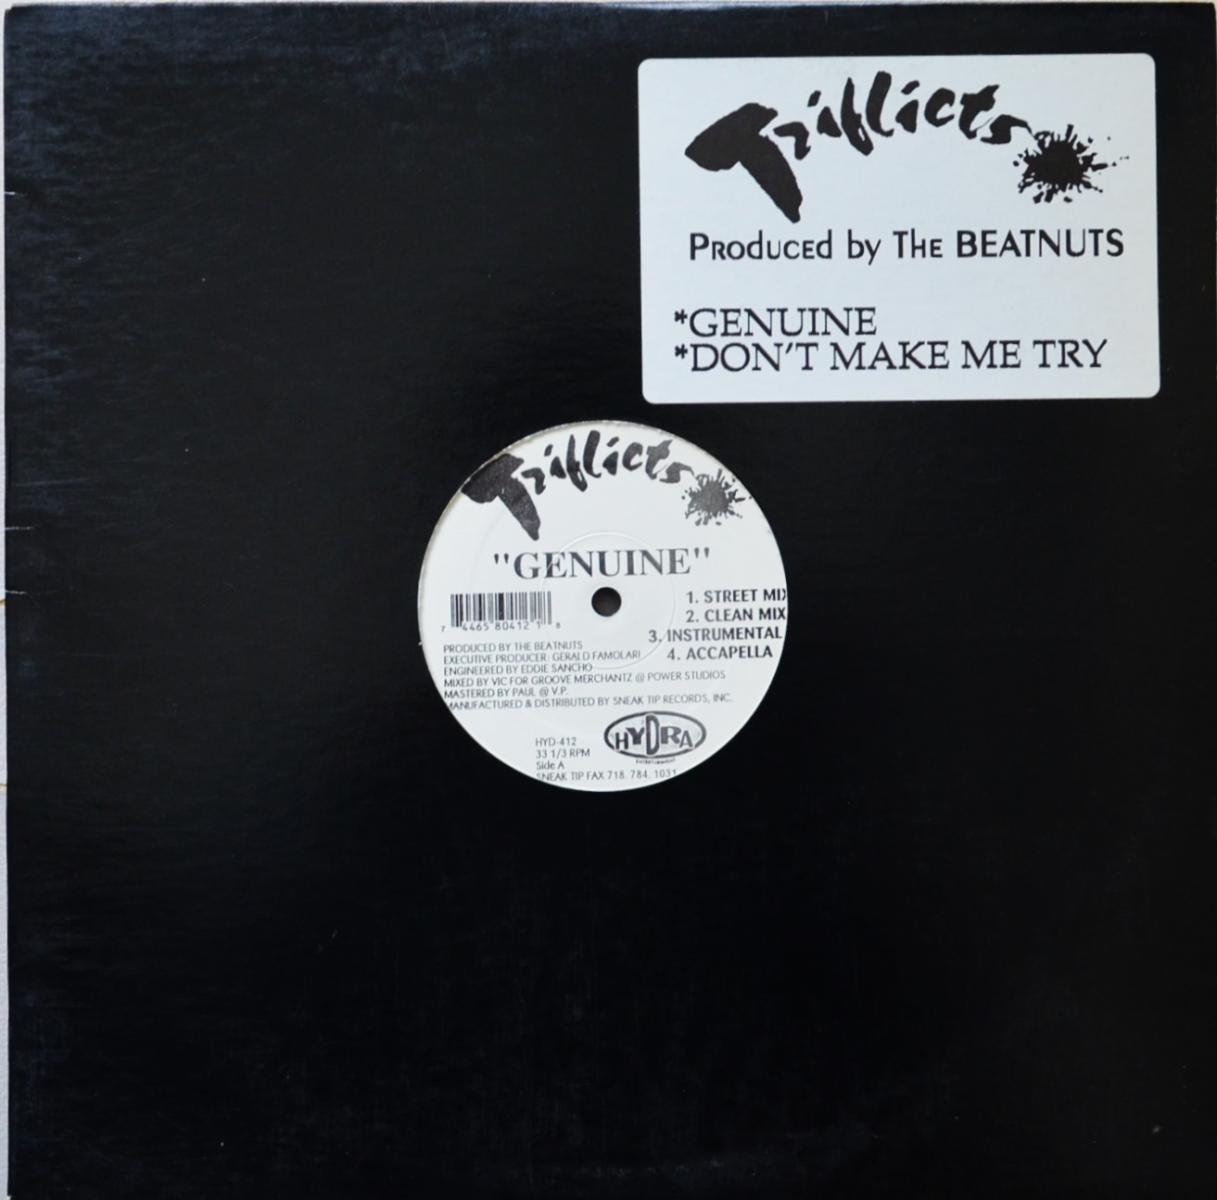 TRIFLICTS / GENUINE / DON'T MAKE ME TRY (PROD BY THE BEATNUTS) (12